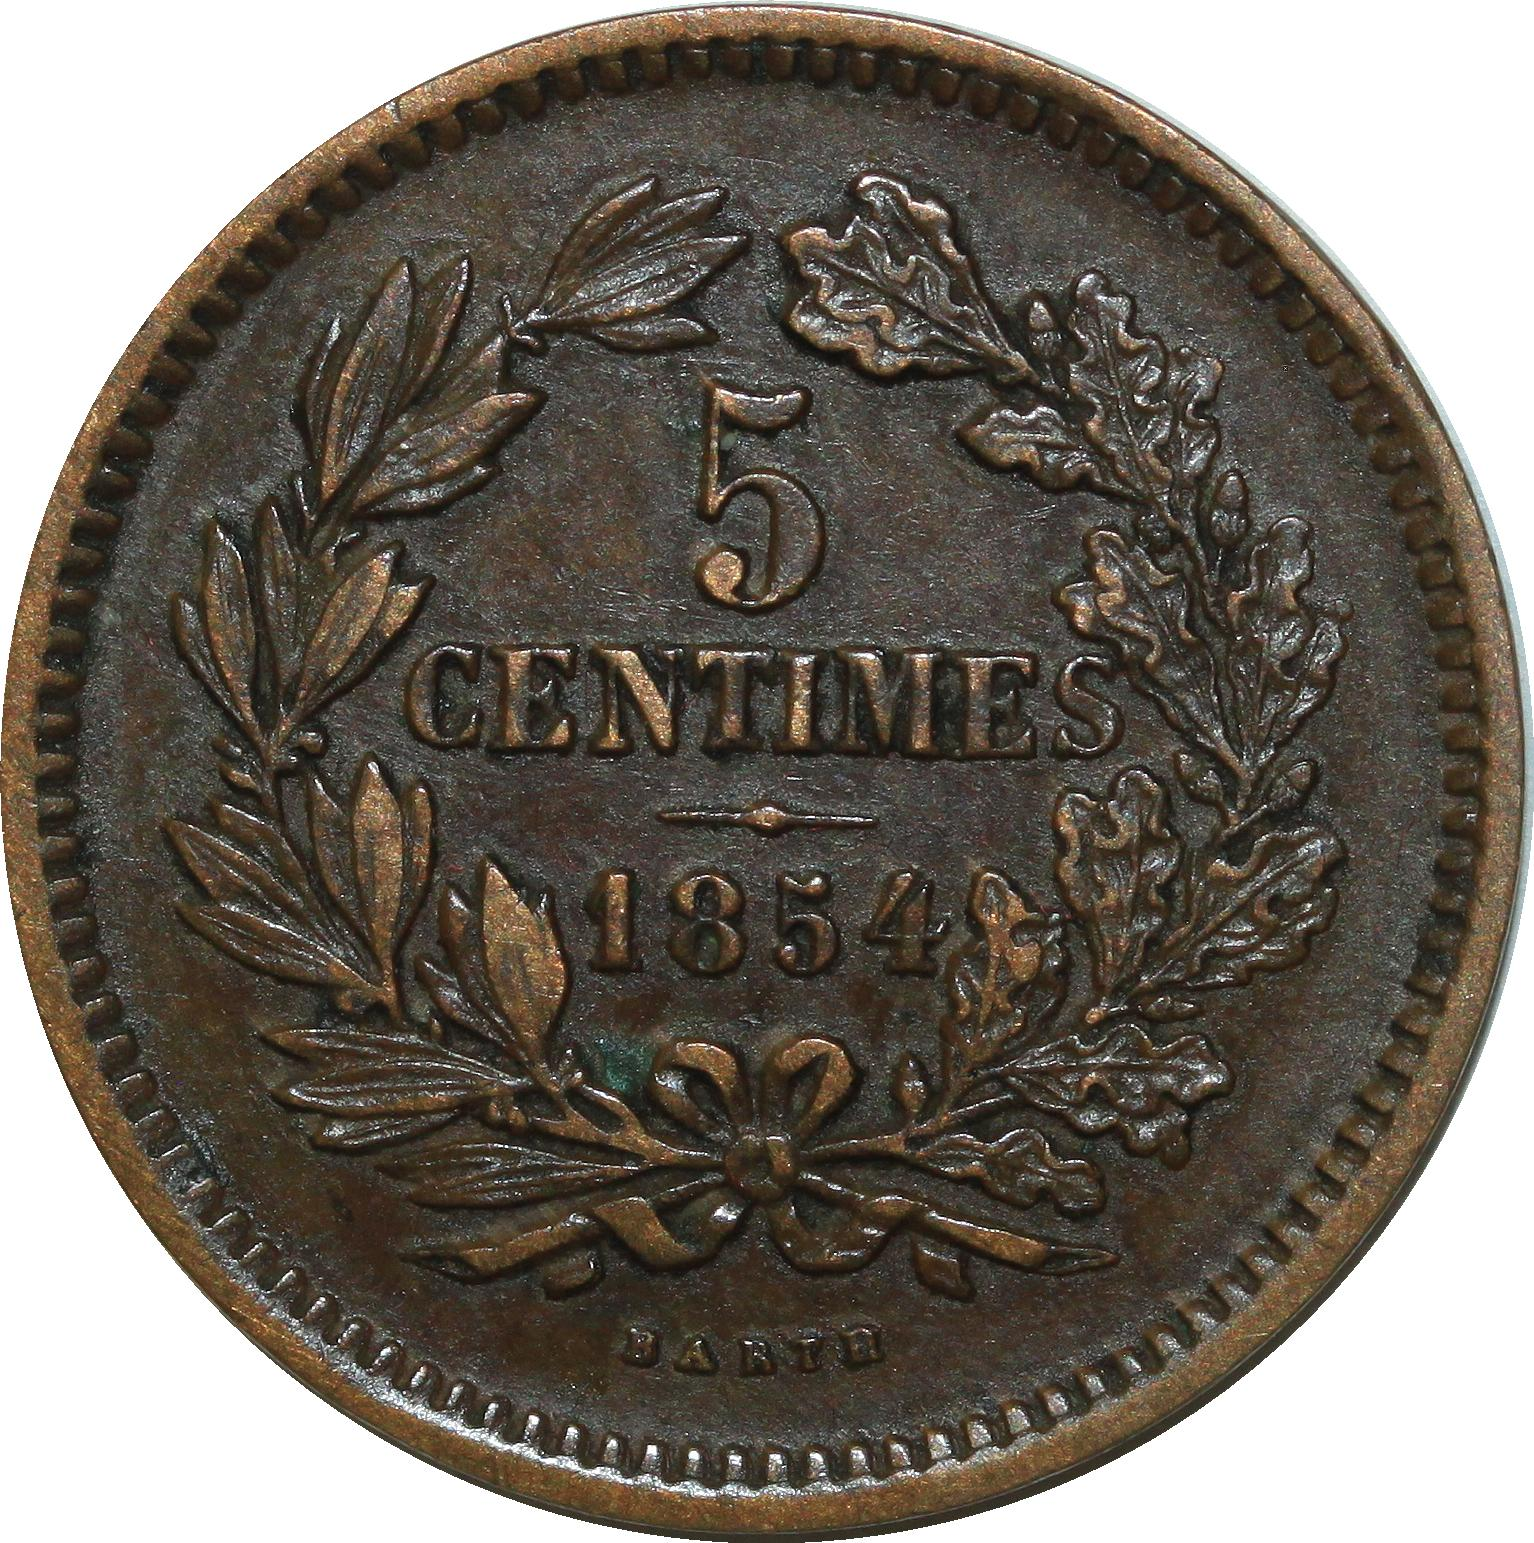 O6835 Luxemburg 5 Centimes 1854 Barth Quality ->Make offer